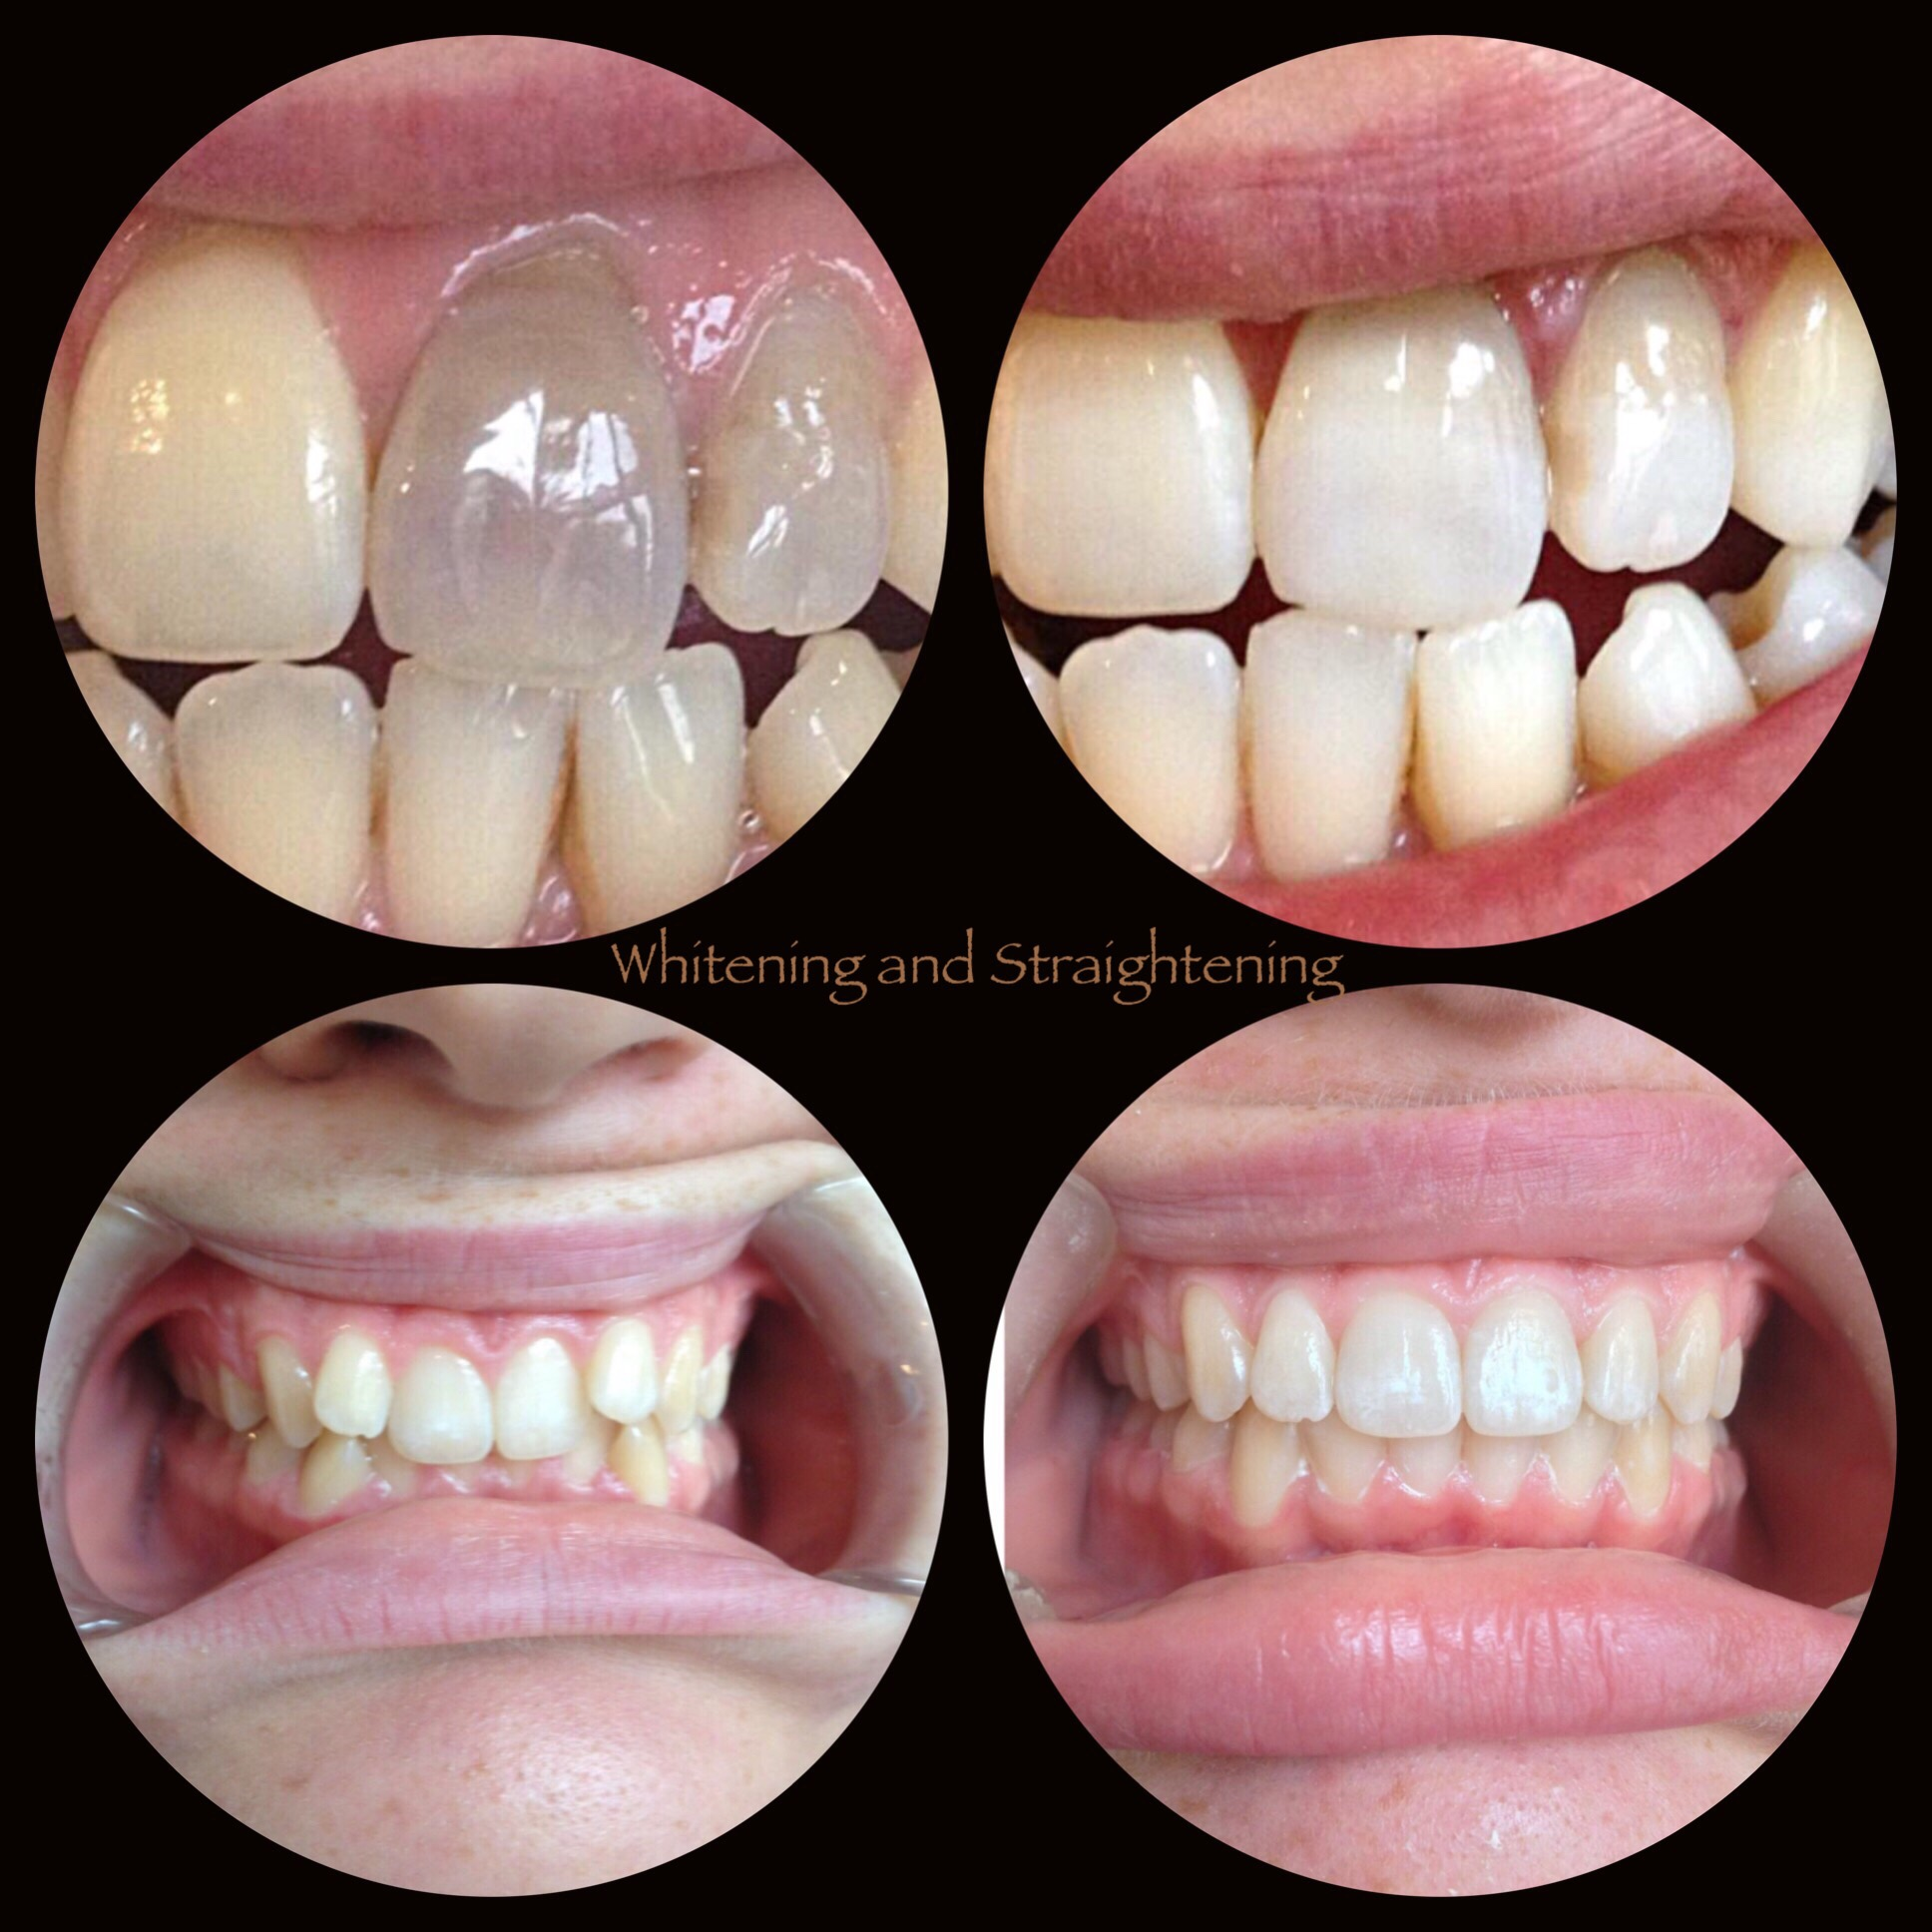 Internal teeth whitening